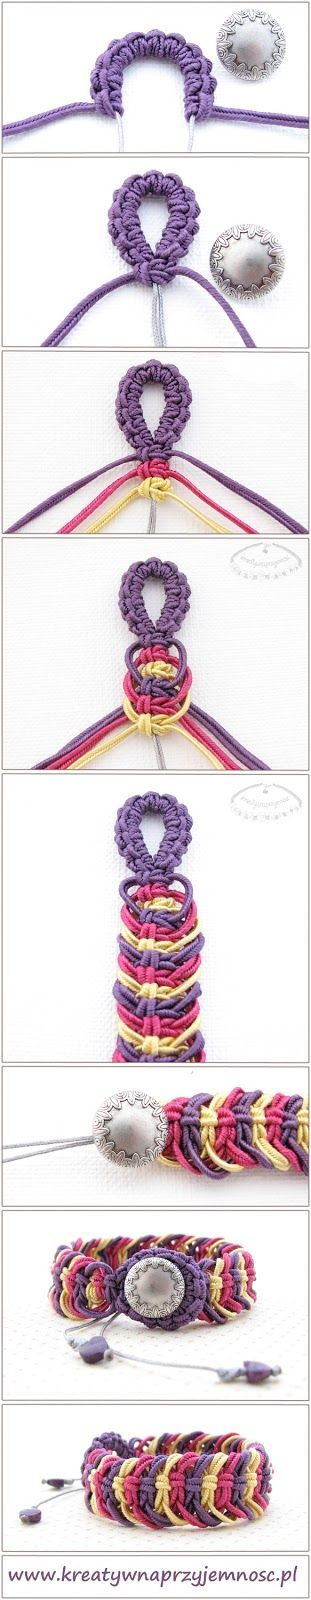 Craft yourself a soft, colorful bracelet with this great tutorial for casual style.: